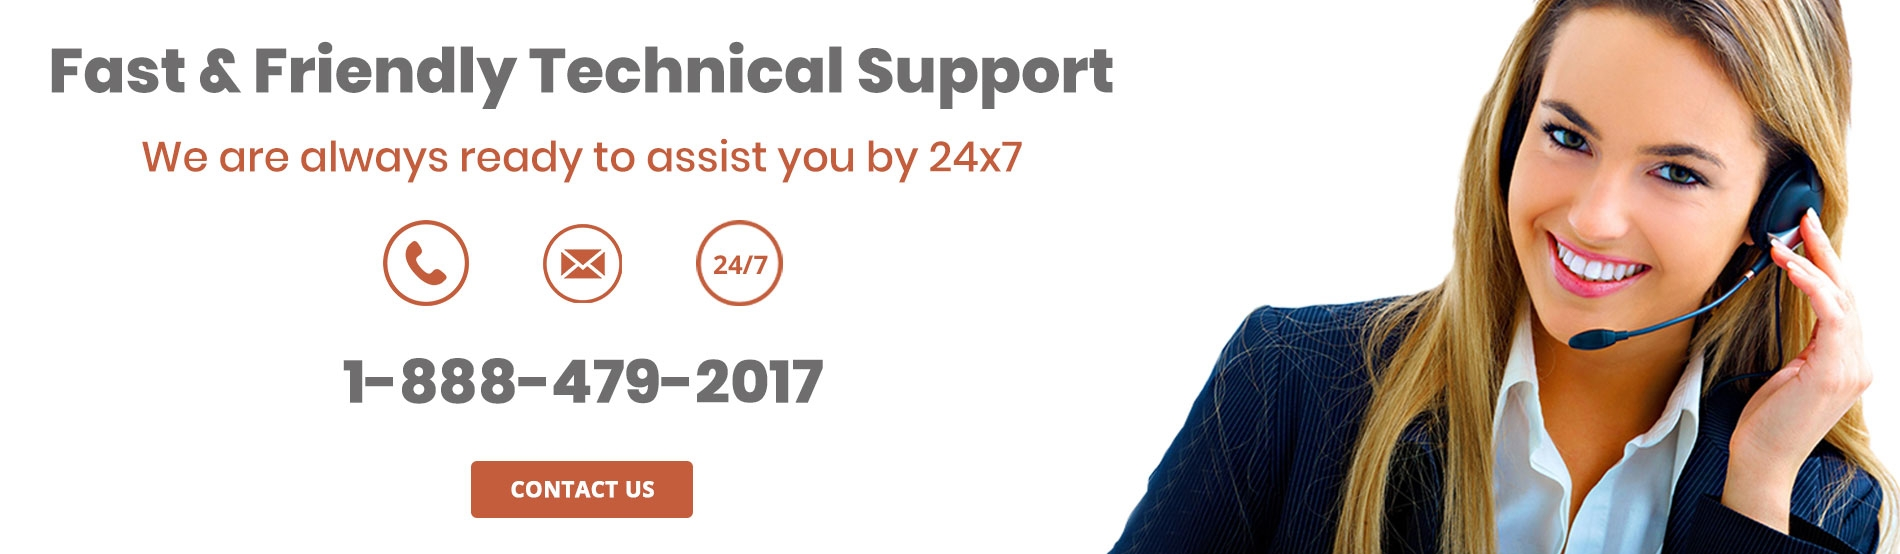 Arris Router Tech Support  (@arristechnicalsupport) Cover Image